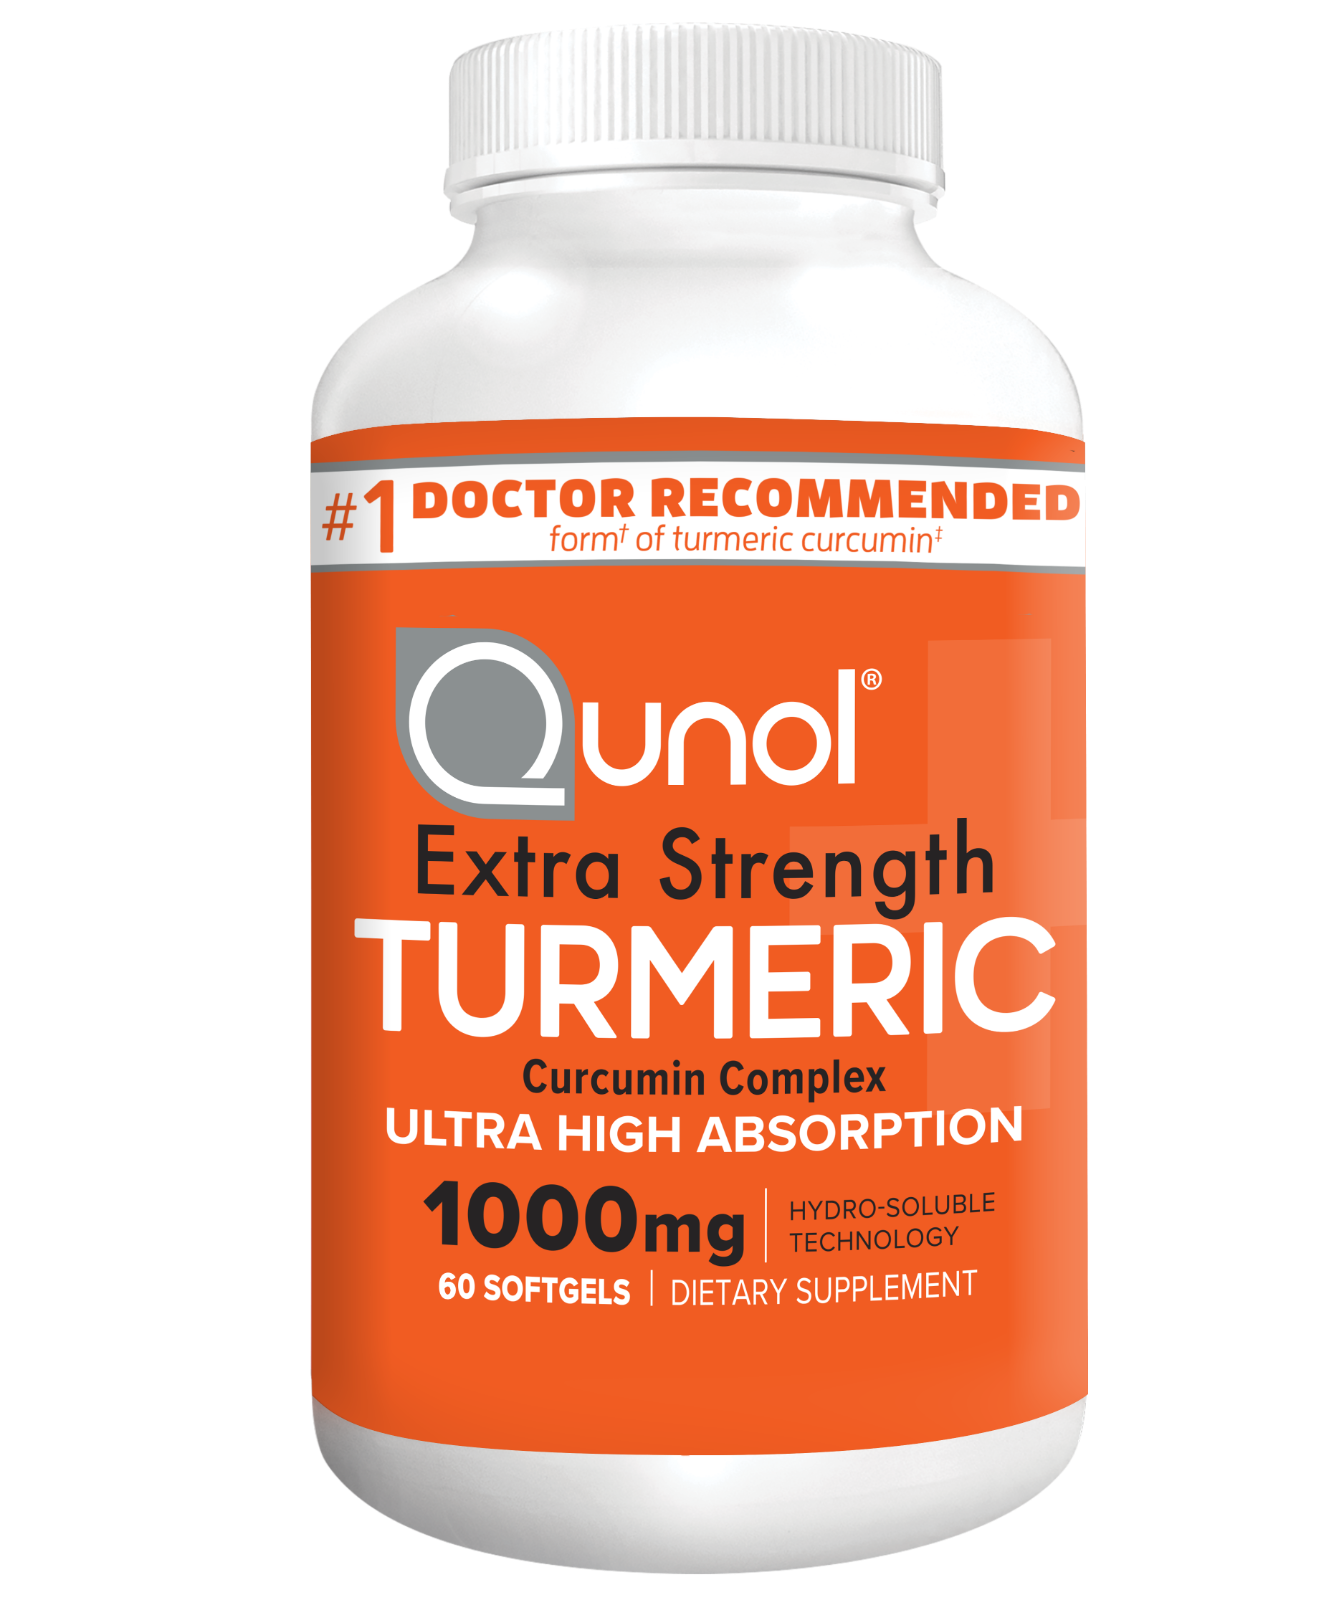 Turmeric Curcumin, Qunol Ultra High Absorption Extra Strengt